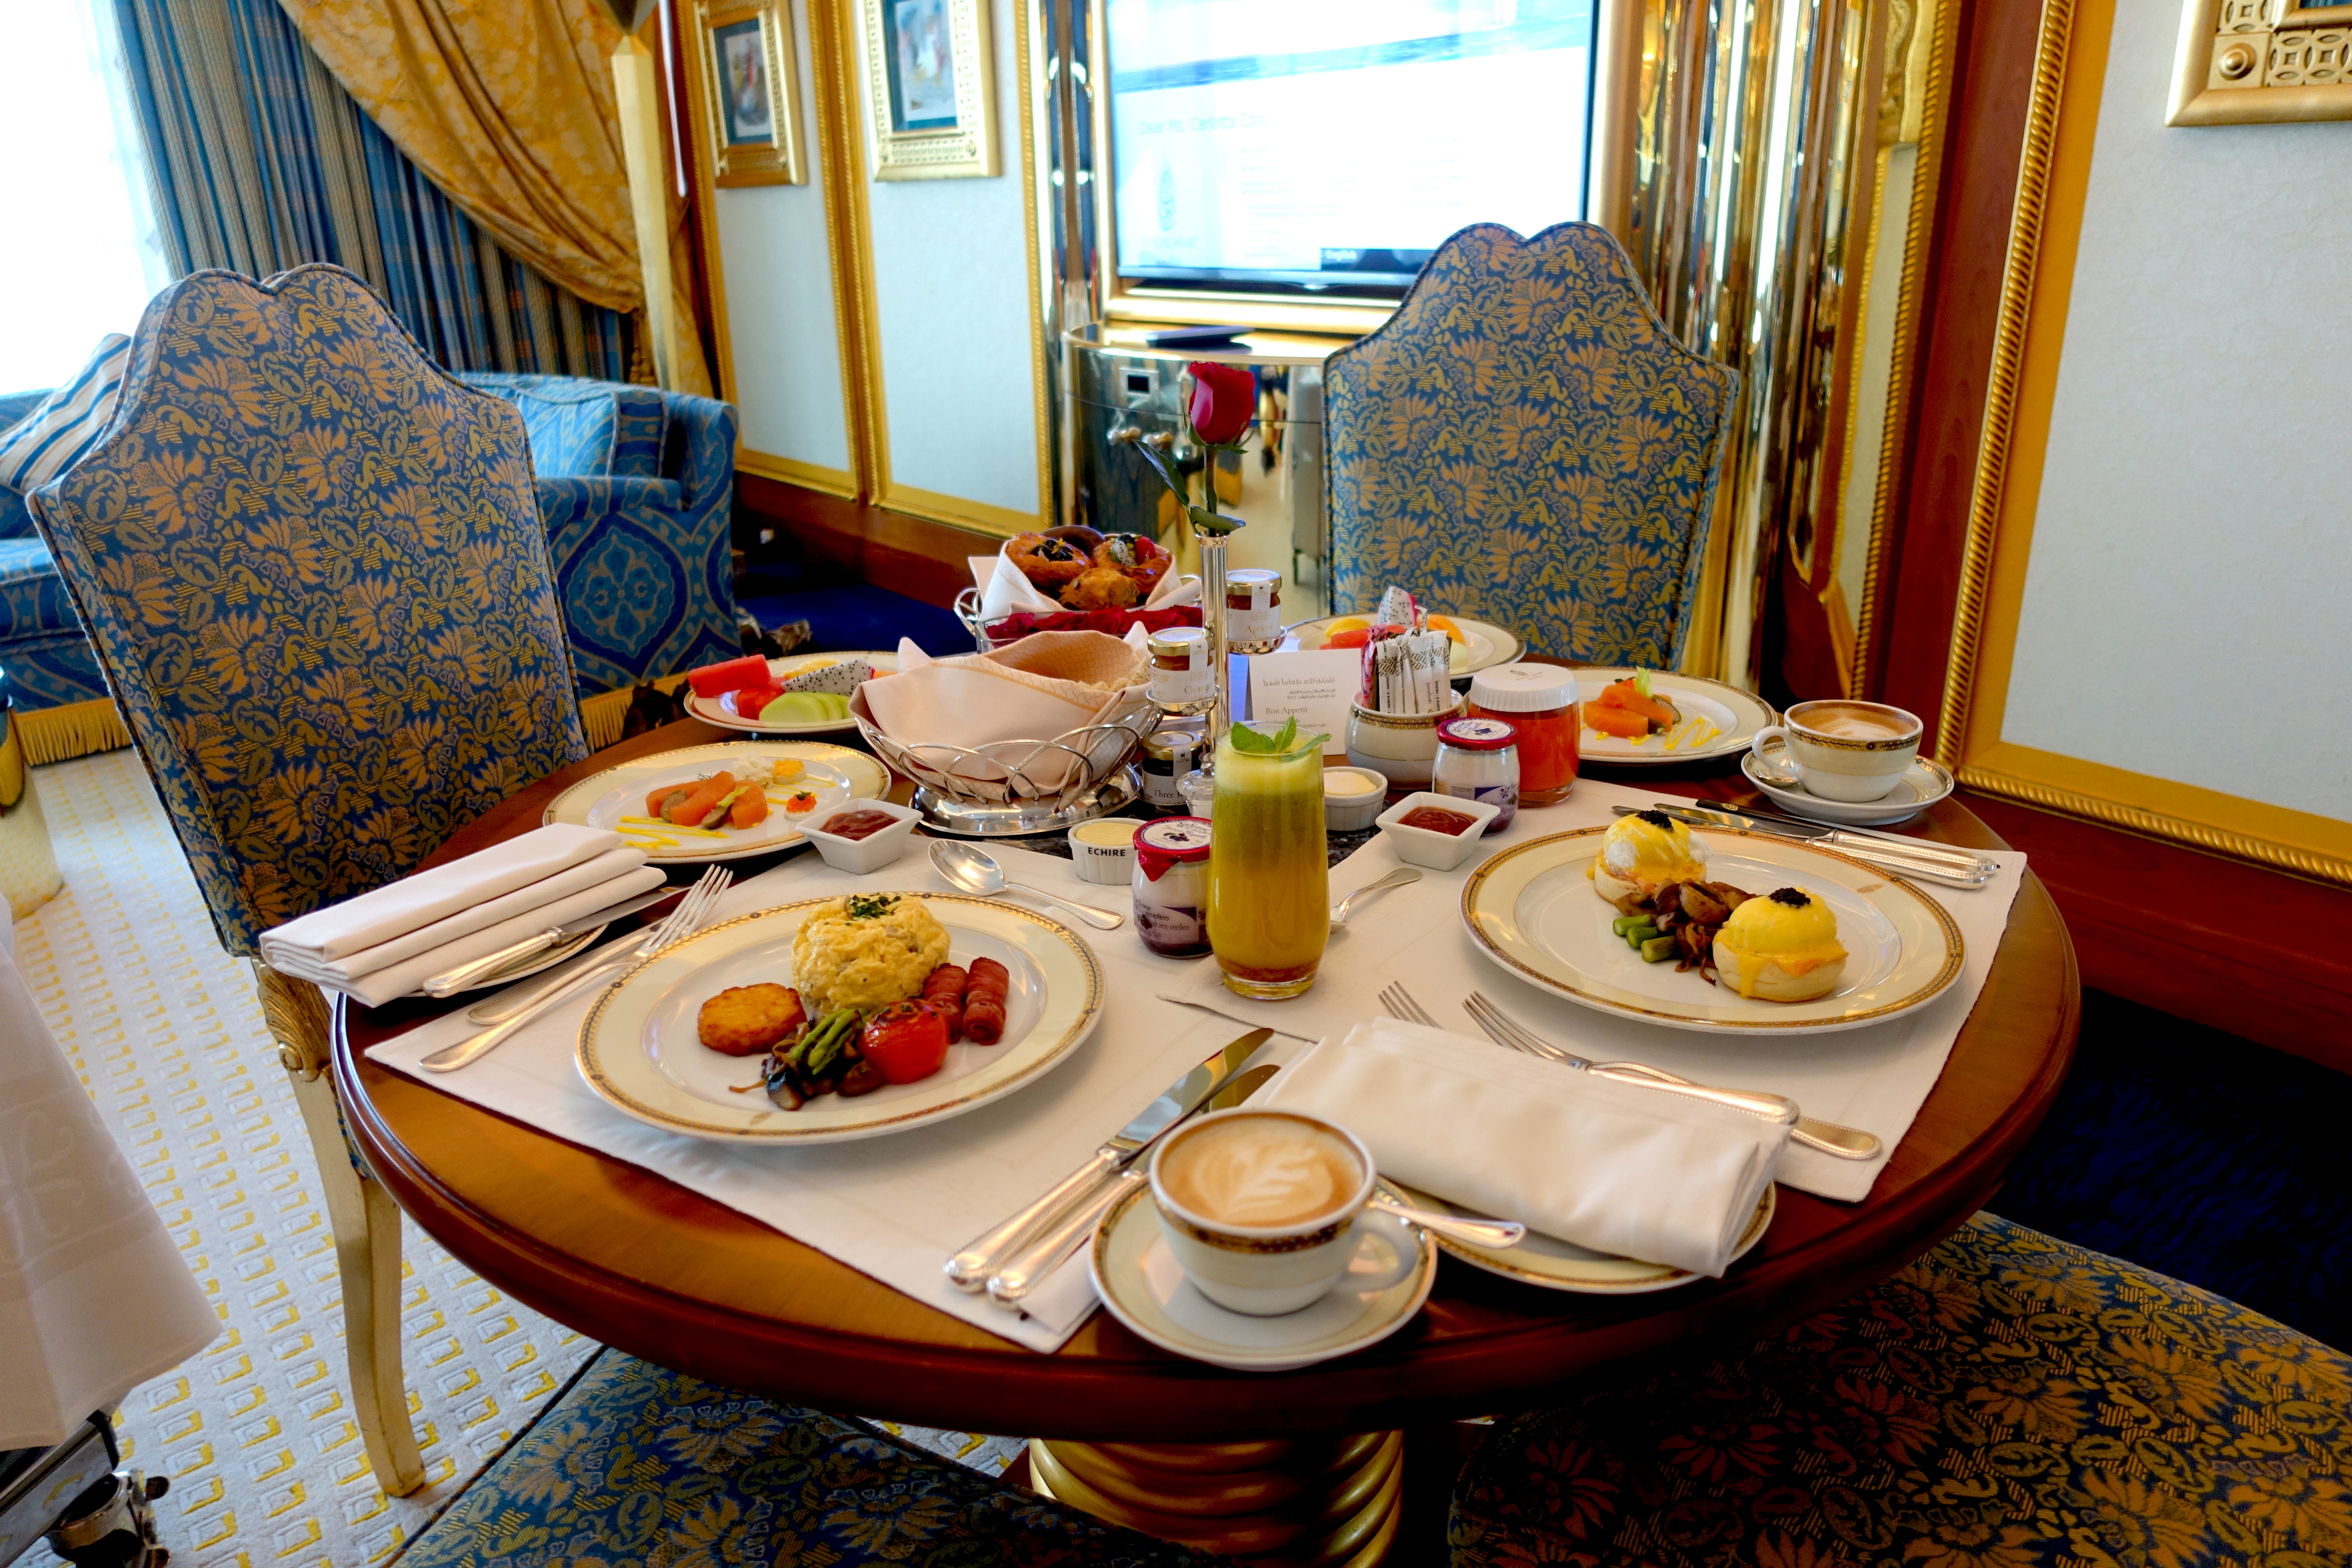 burj-al-arab-breakfast-lustforthesublime